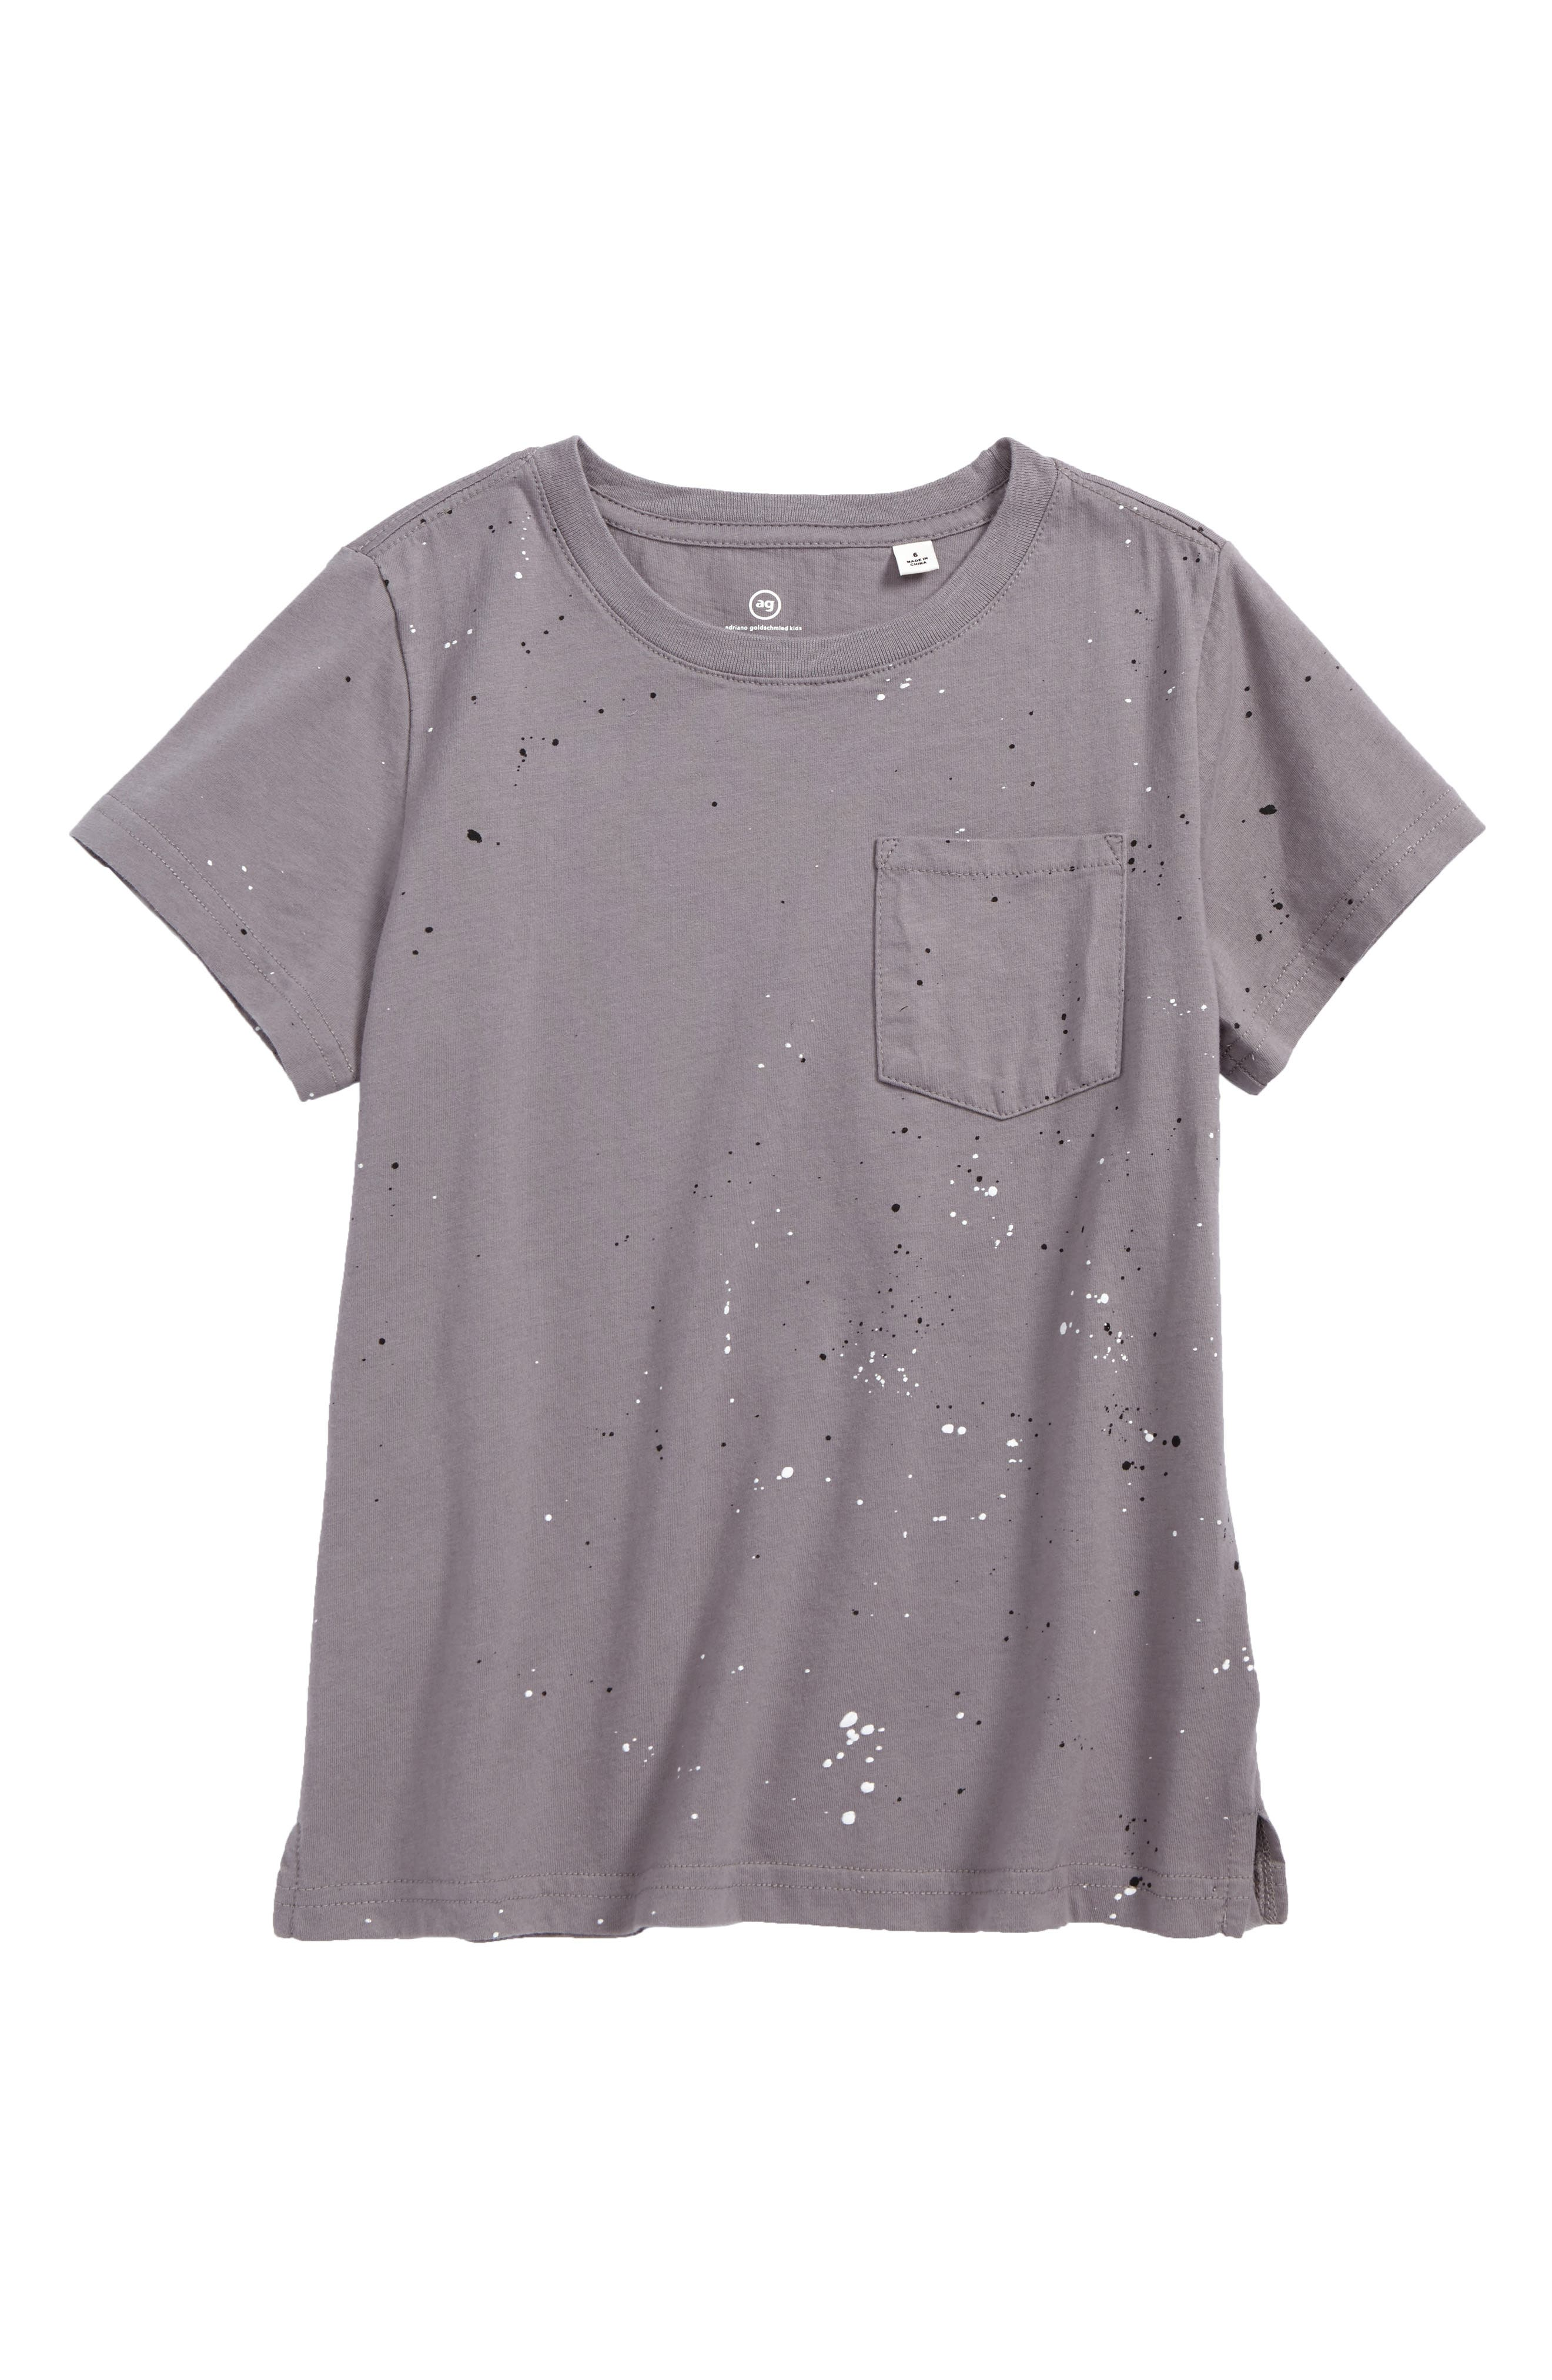 AG Paint Splatter T-Shirt,                             Main thumbnail 1, color,                             Smog